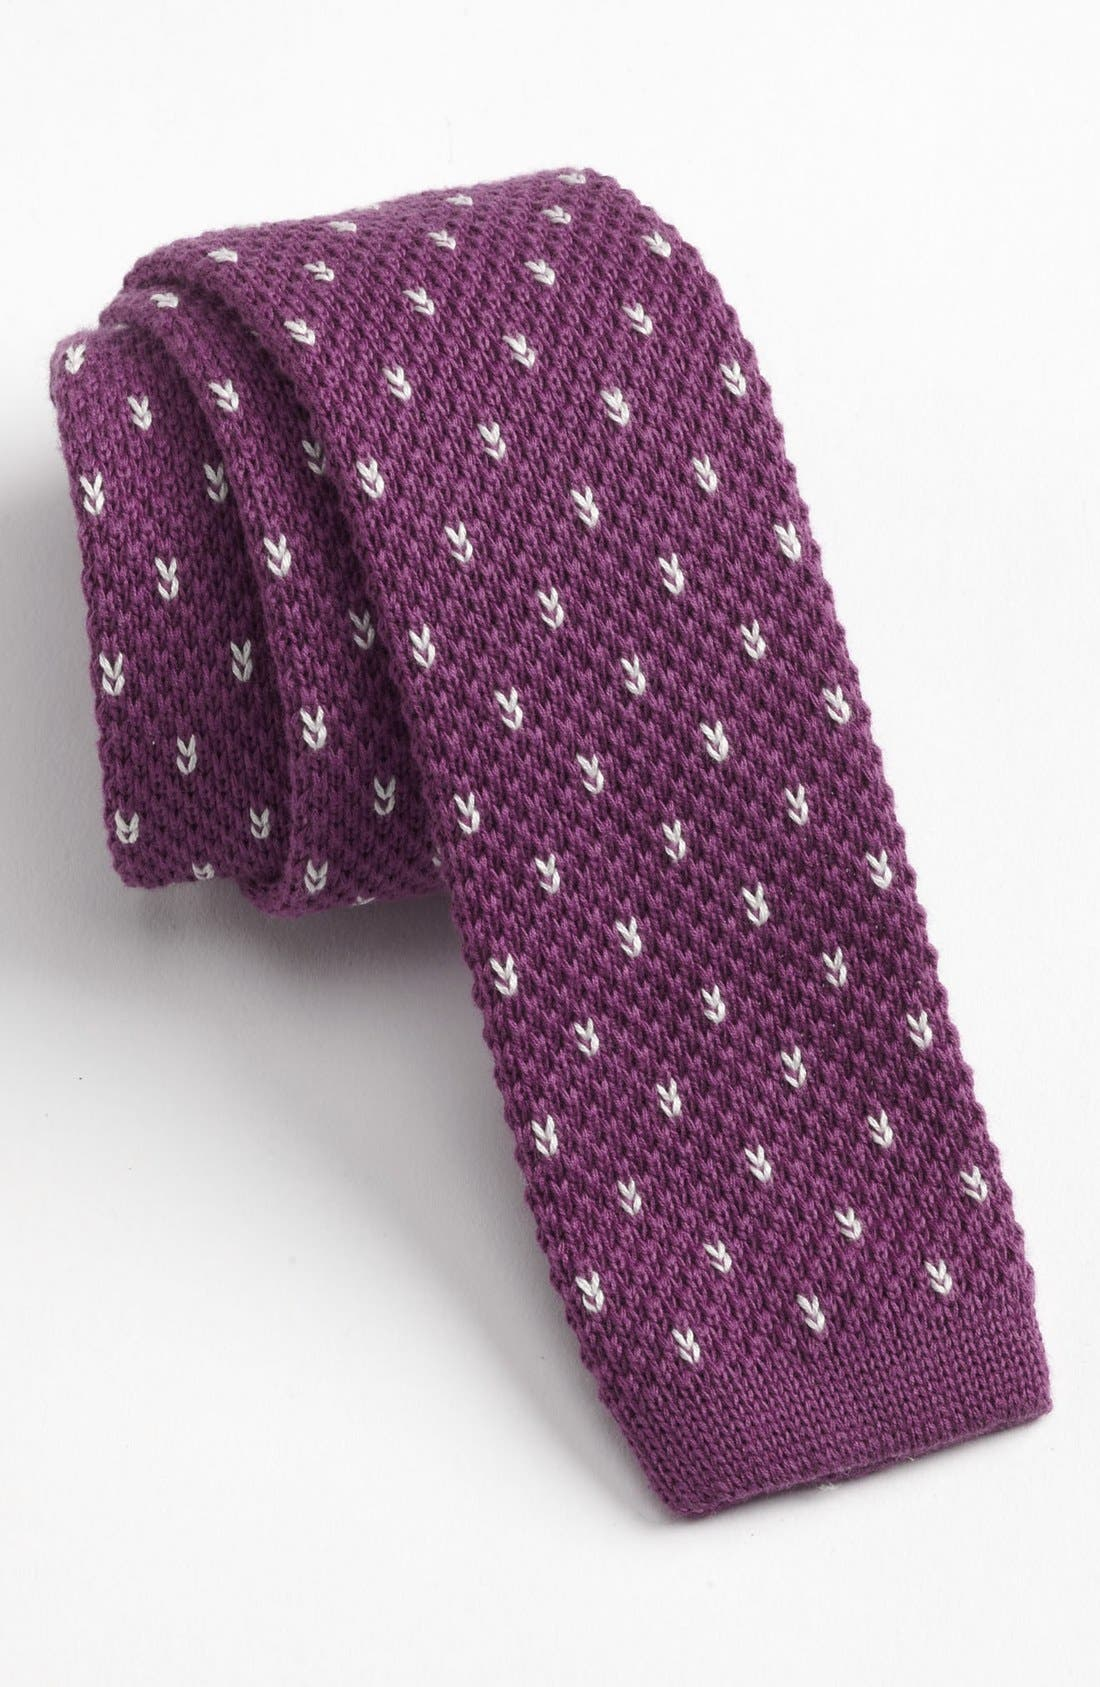 Main Image - 1901 Knit Cotton Tie (Online Only)